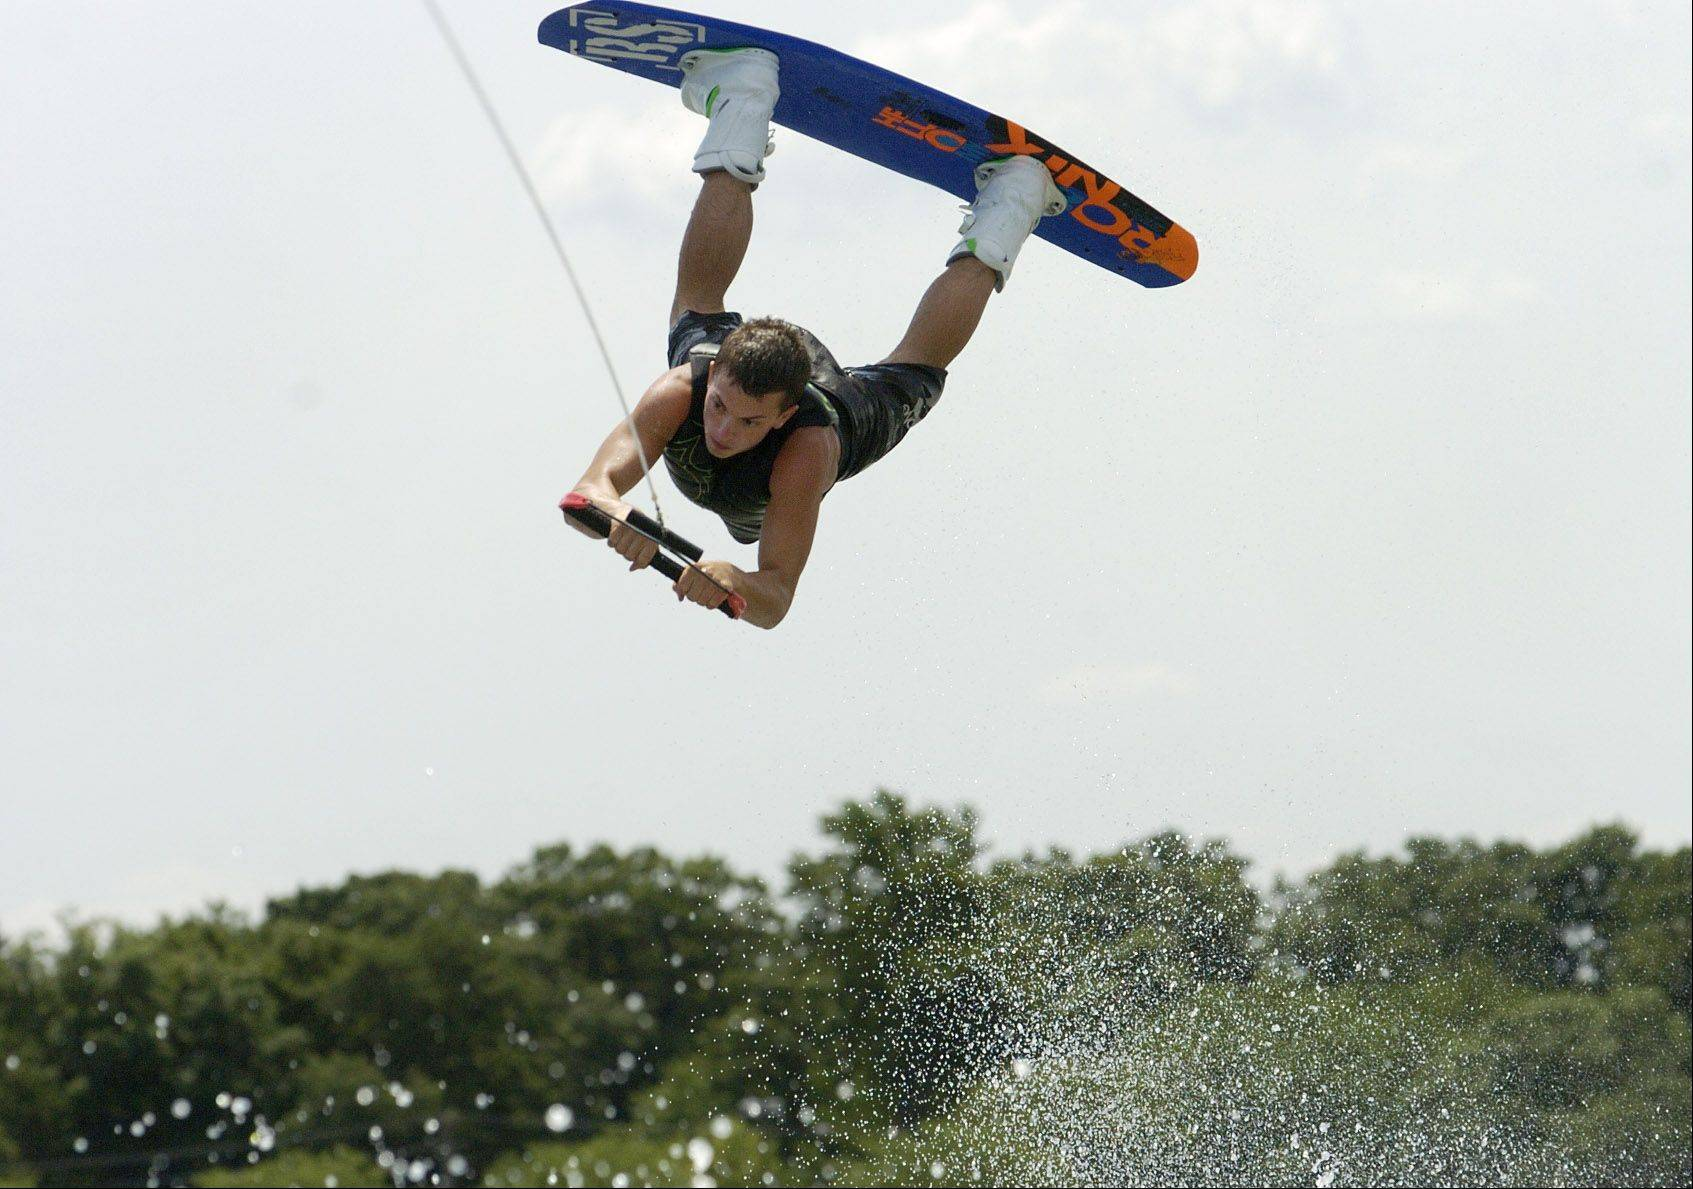 19-year-old Timmy Burnier of Sleepy Hollow, took 2nd place in the 2011 Nautique WWA Wakeboard National Championship in the Junior Men's Division. Here he puts on an exhibition at Mundelein Park District's Diamond Lake Wakeboard Spectacular.